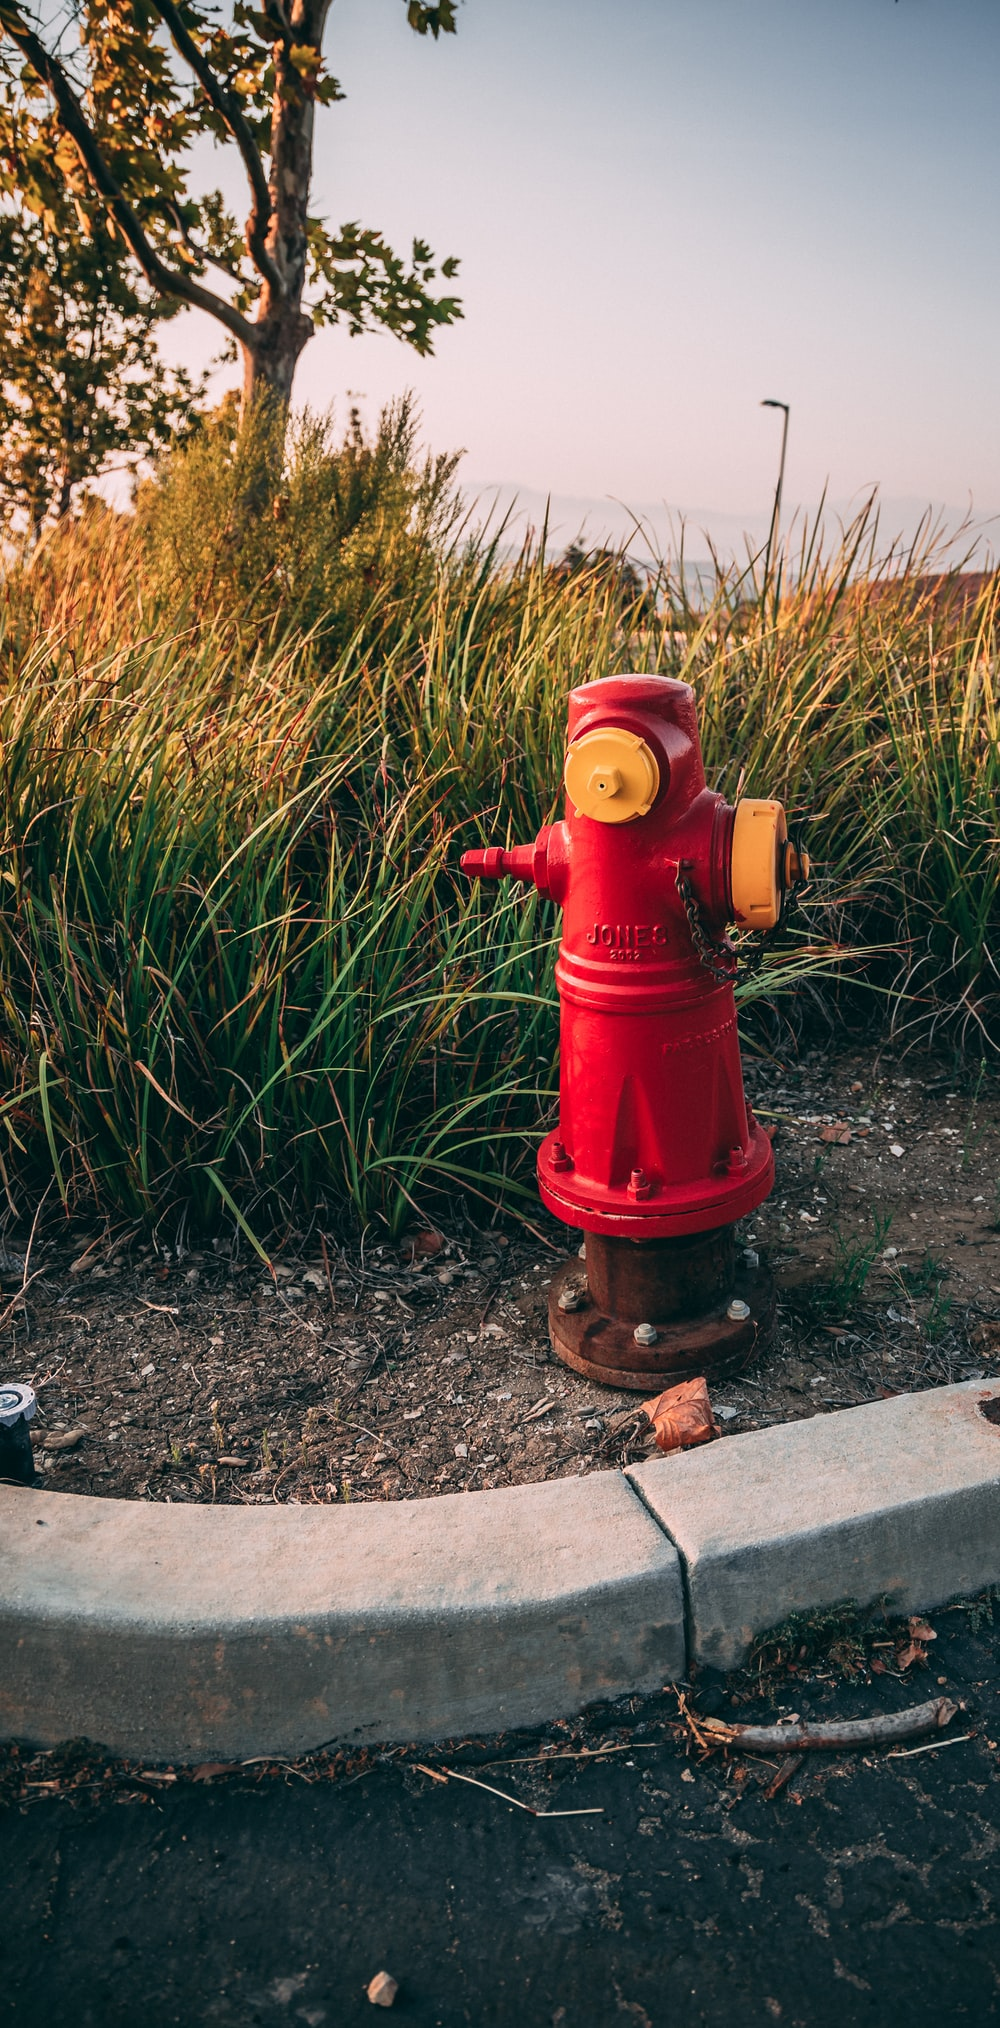 red fire hydrant on gray soil